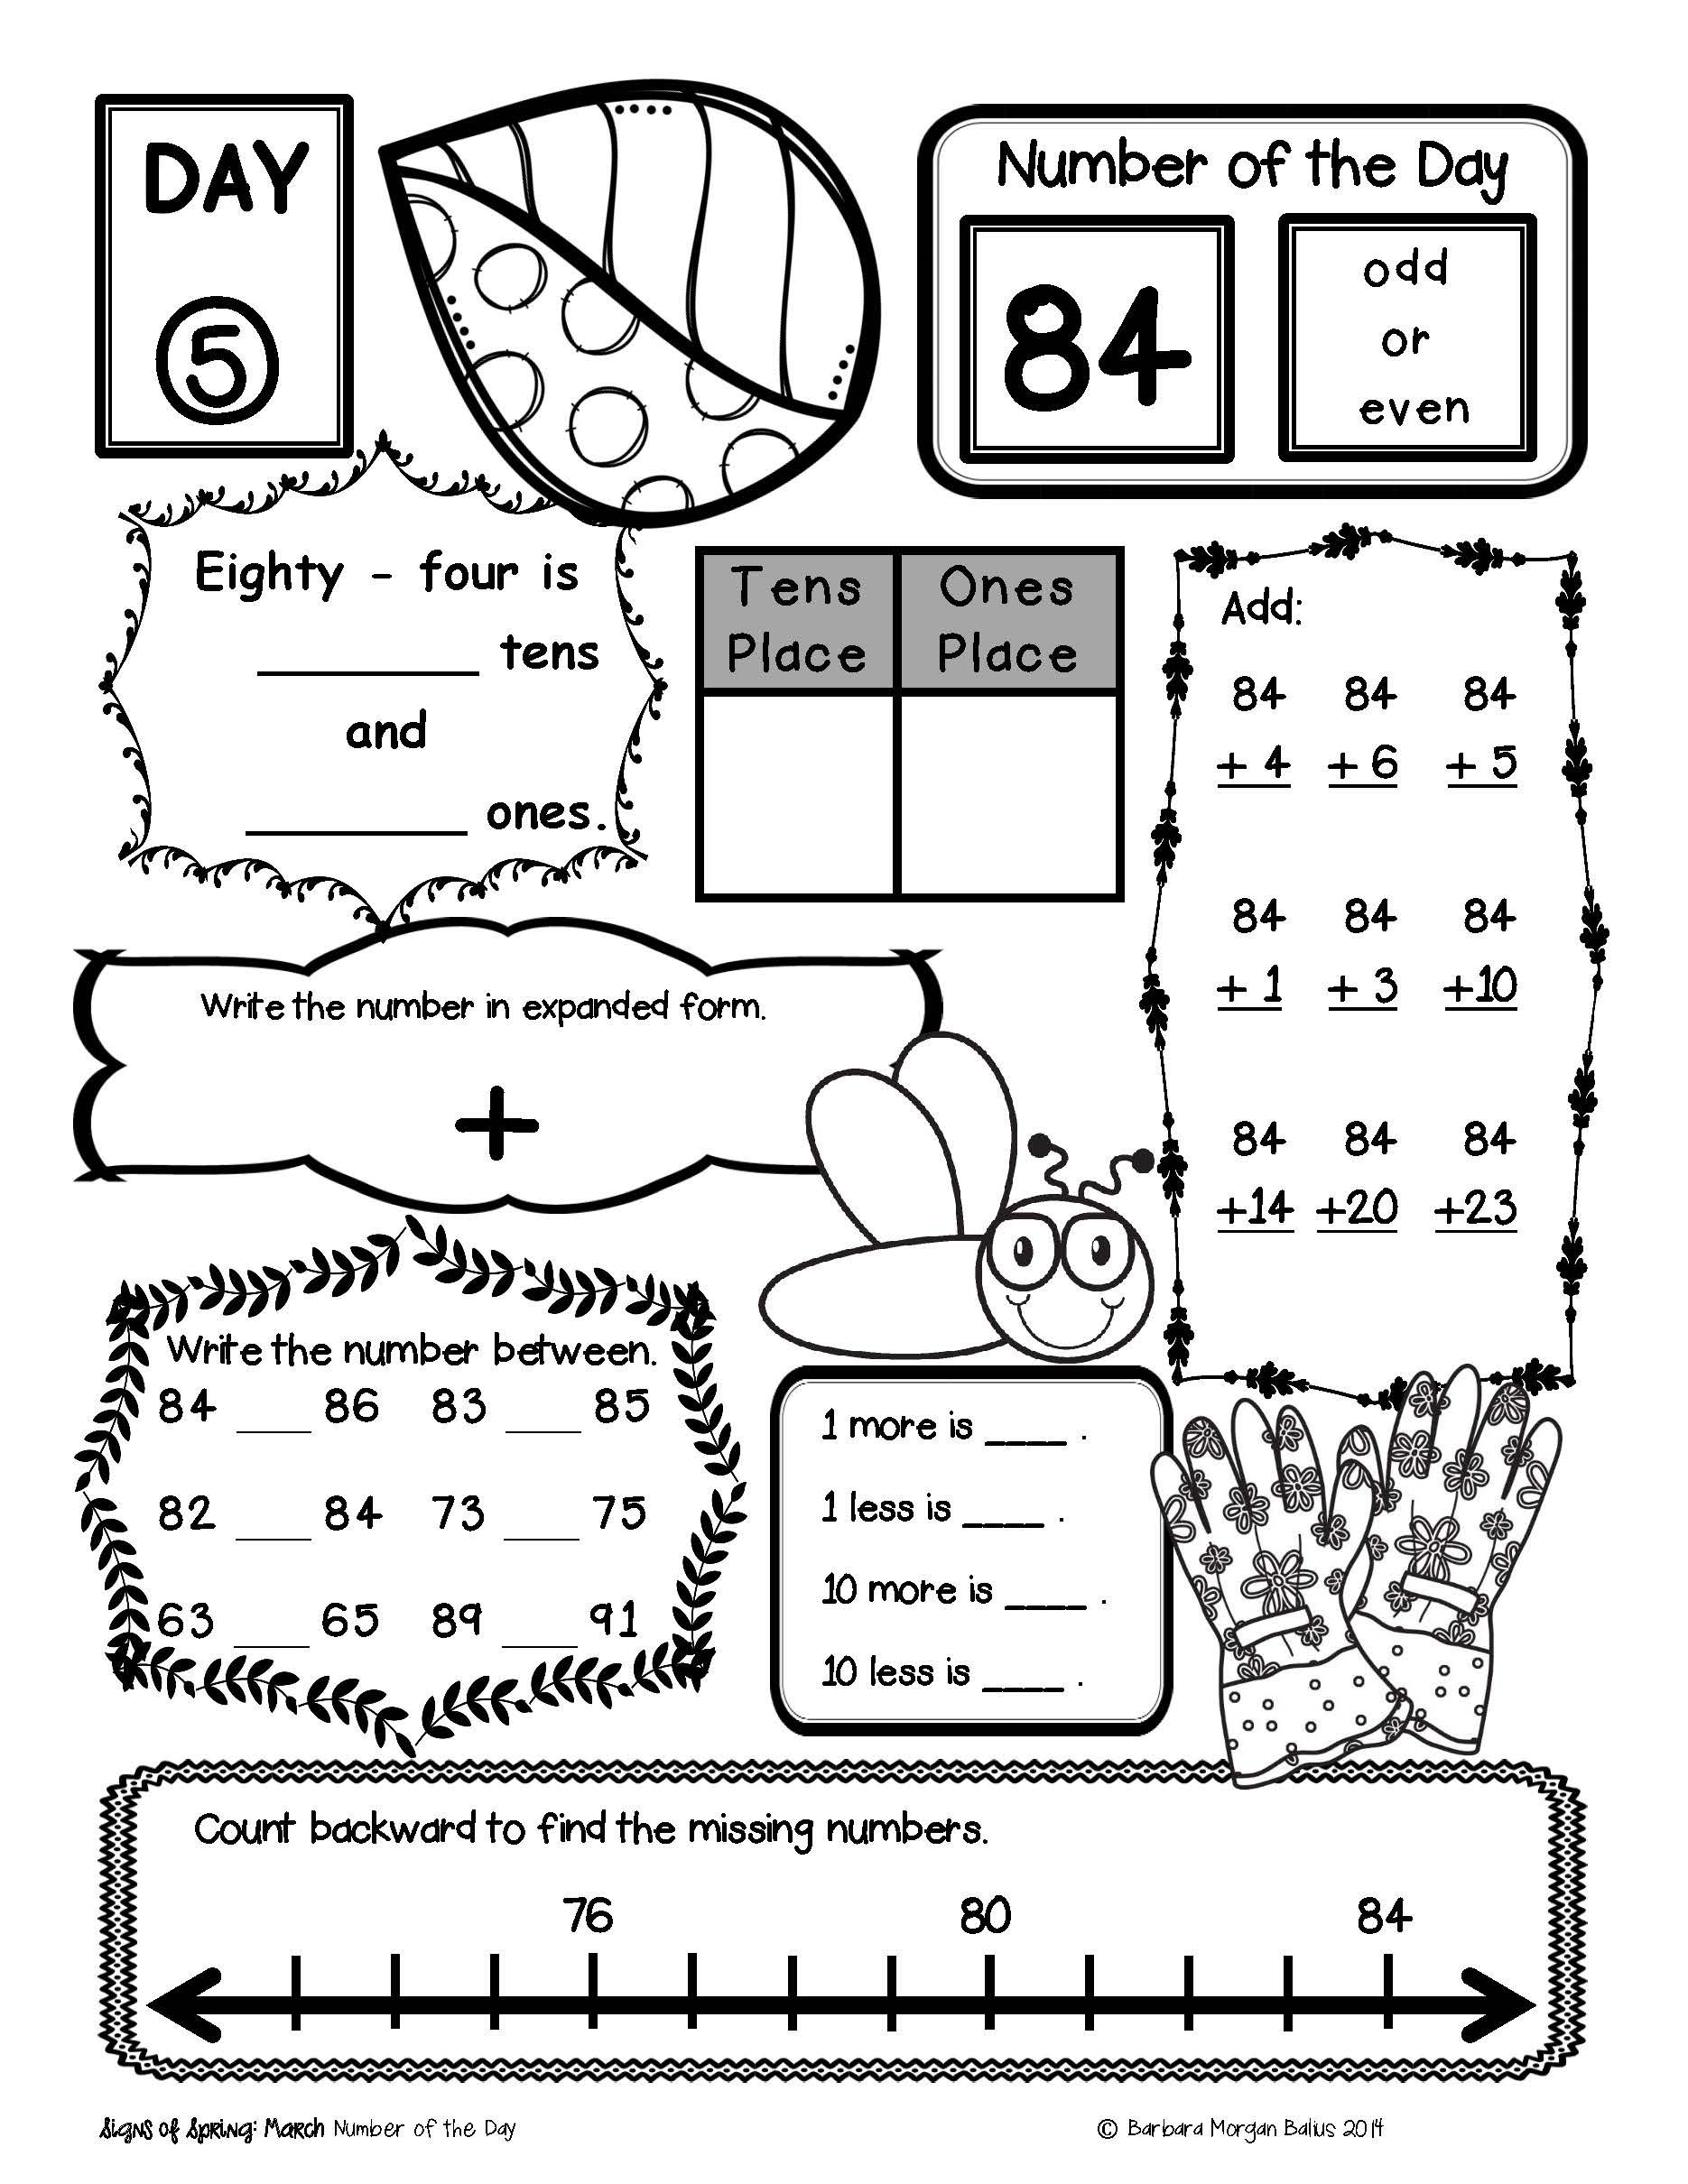 K5 Learning Grade 5Th Math Staar Practice Worksheets Games